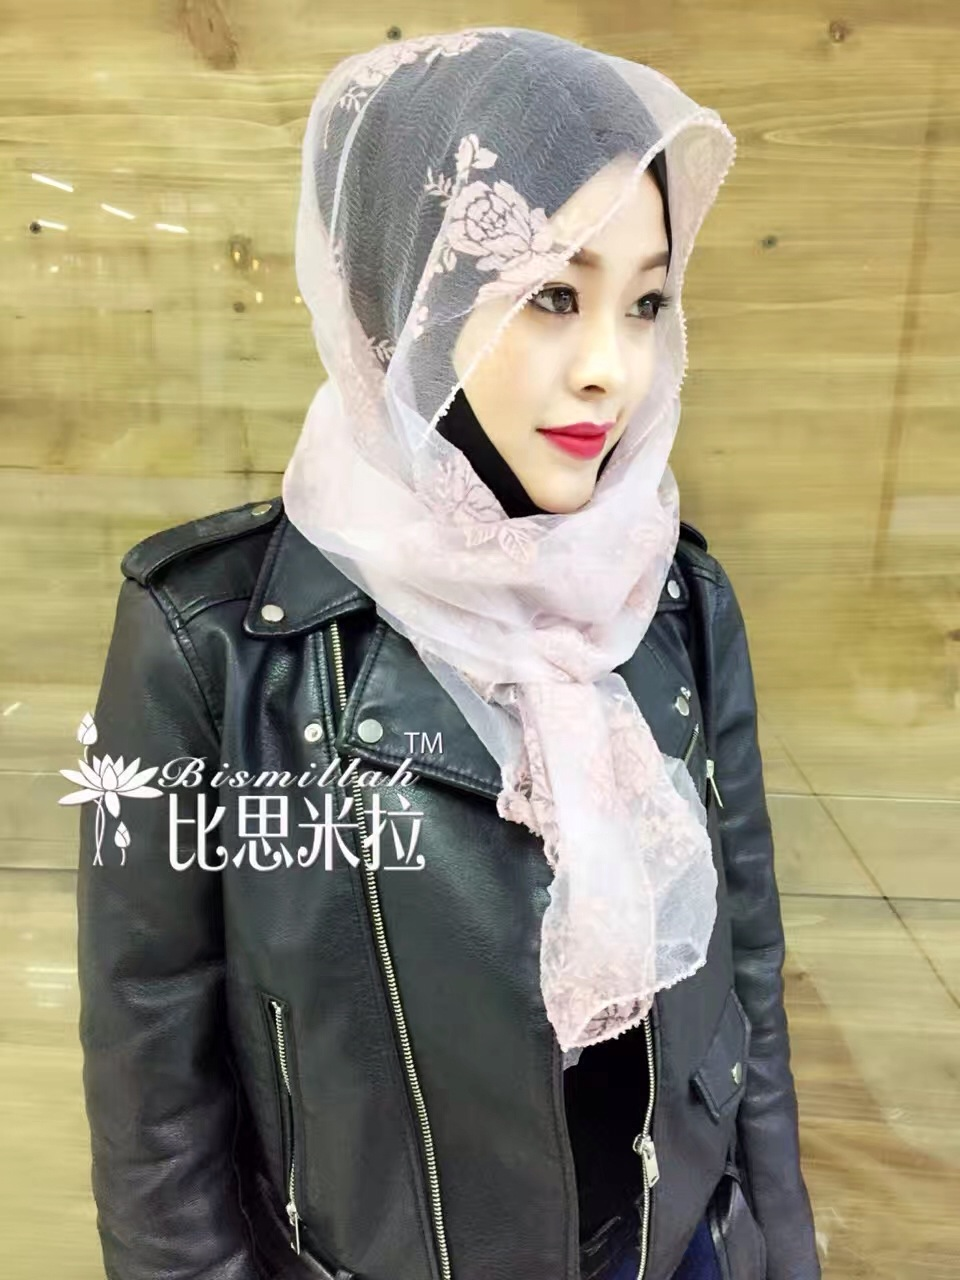 Leather jacket hijab -  12 Pieces Lot 2017 New Design Organza Summer Muslim Hijab Scarves Flower Printed Long Shawls Tc442 In Scarves From Women S Clothing Accessories On